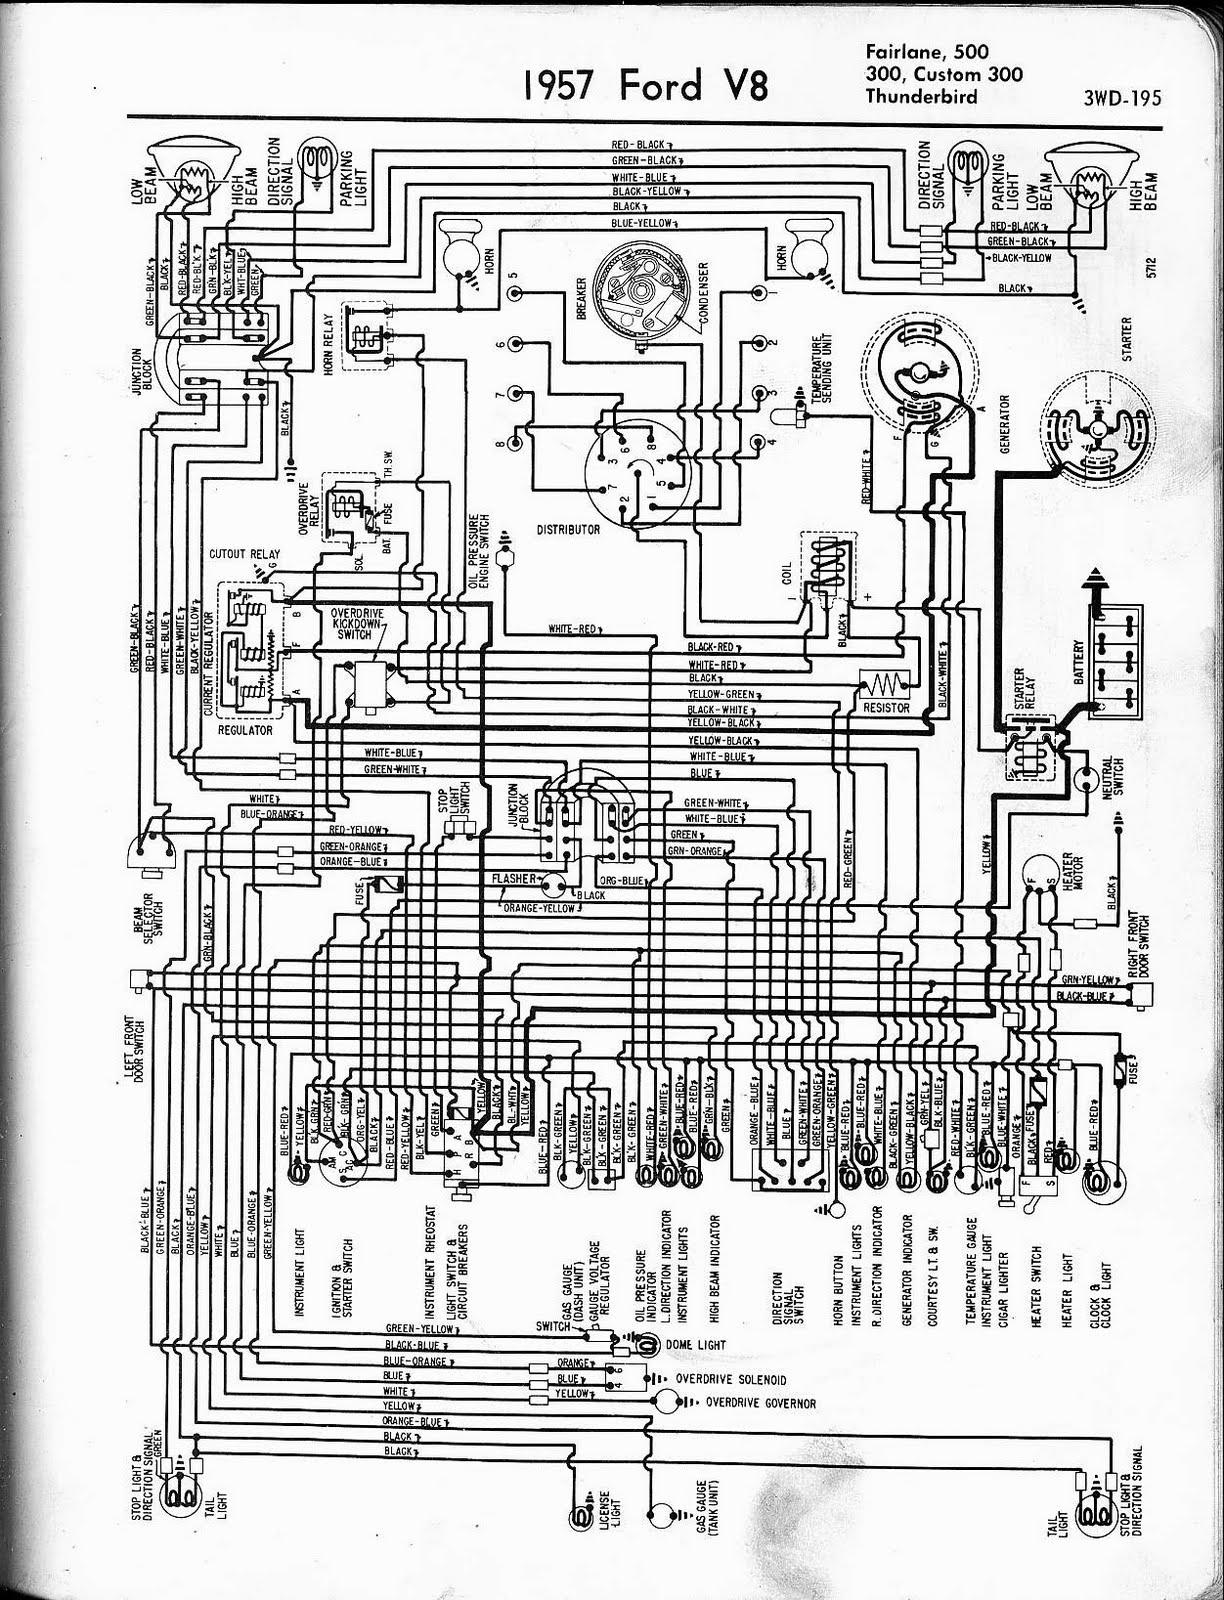 Diagram For A 1956 Ford Fairlane Light Switch Guide And Free Wiring Auto 1957 V8 Custom300